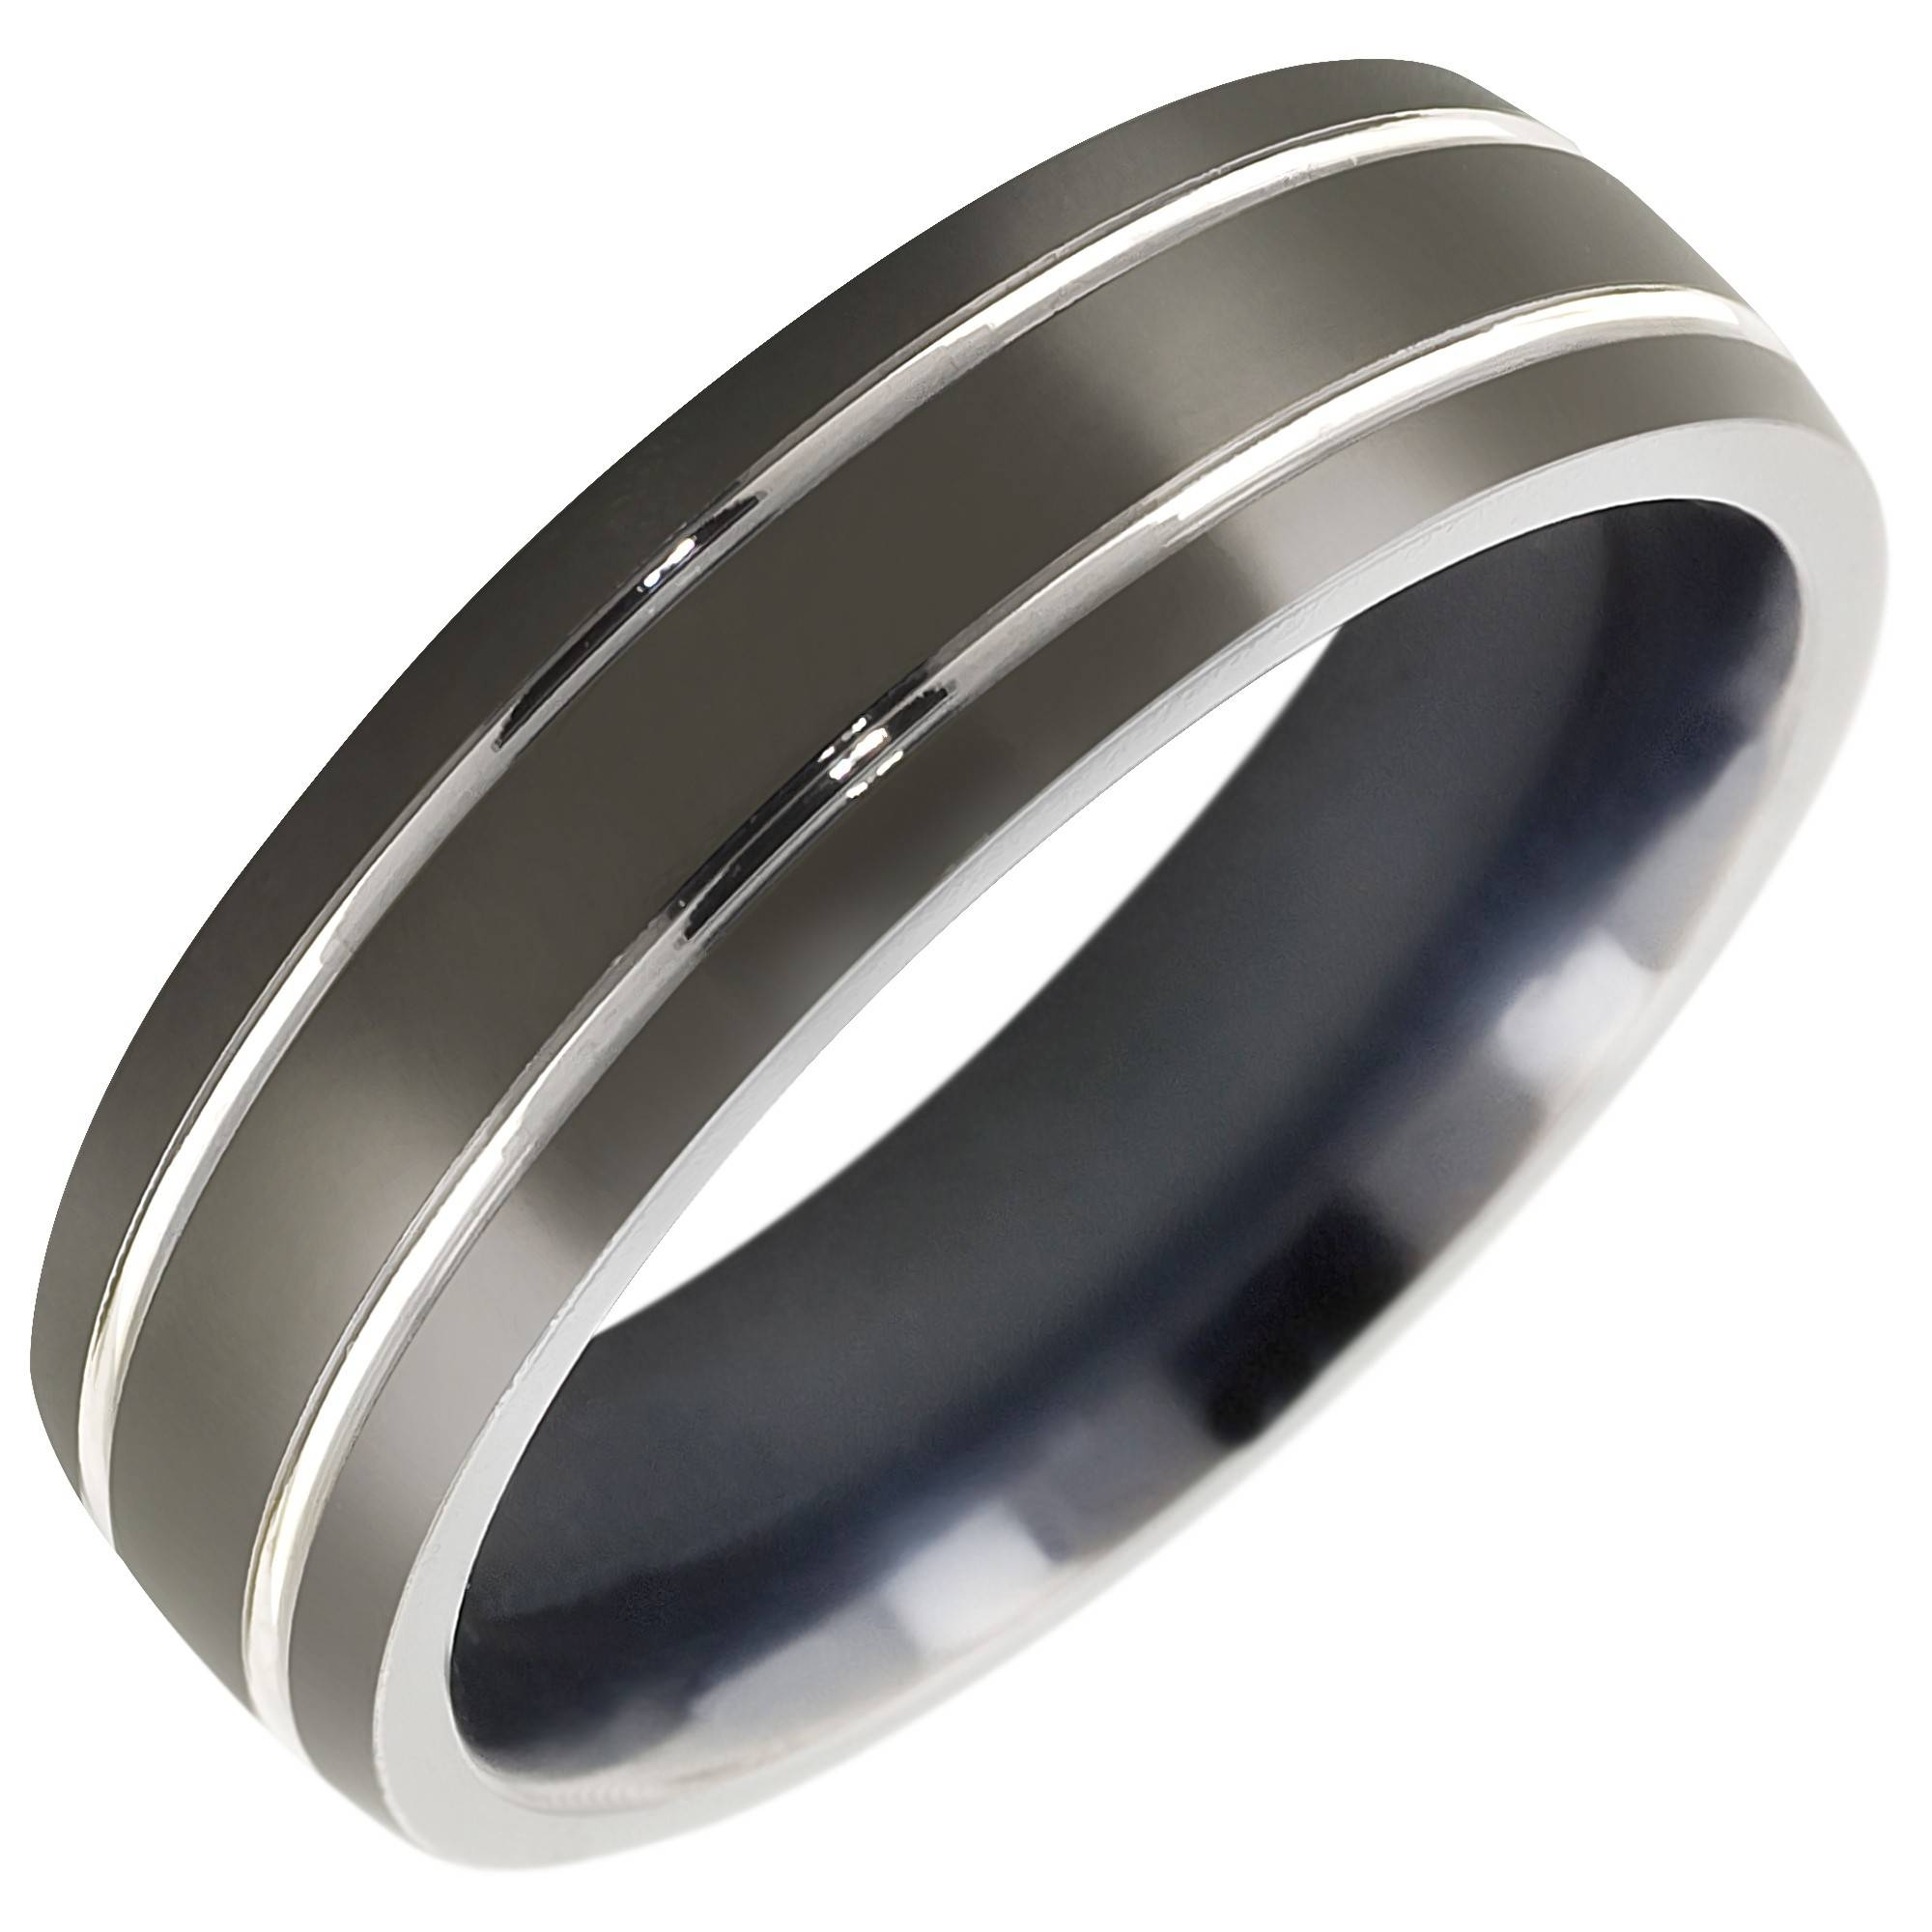 Mens Comfort Fit Wedding Band In Titanium (7mm) Throughout Titanium Men Wedding Bands (Gallery 2 of 15)